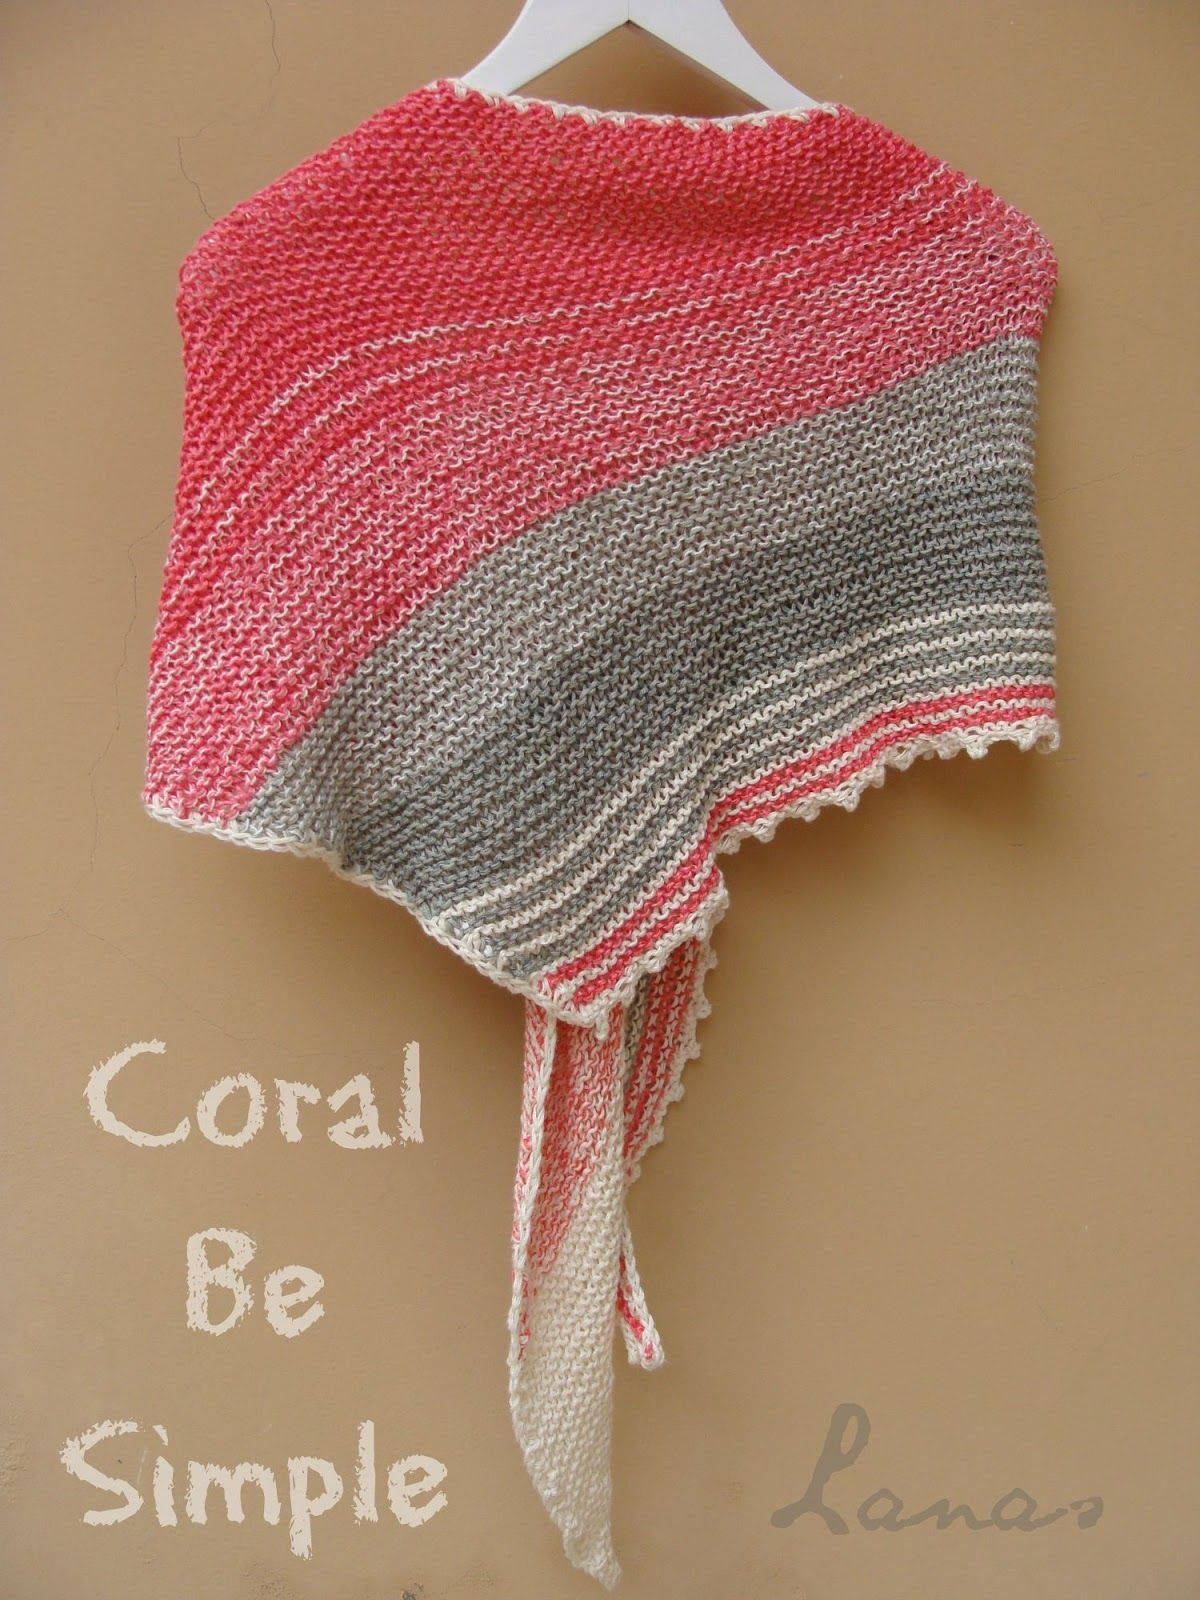 Knit) A summer shawl… Un chal veraniego… The pattern for this shawl ...